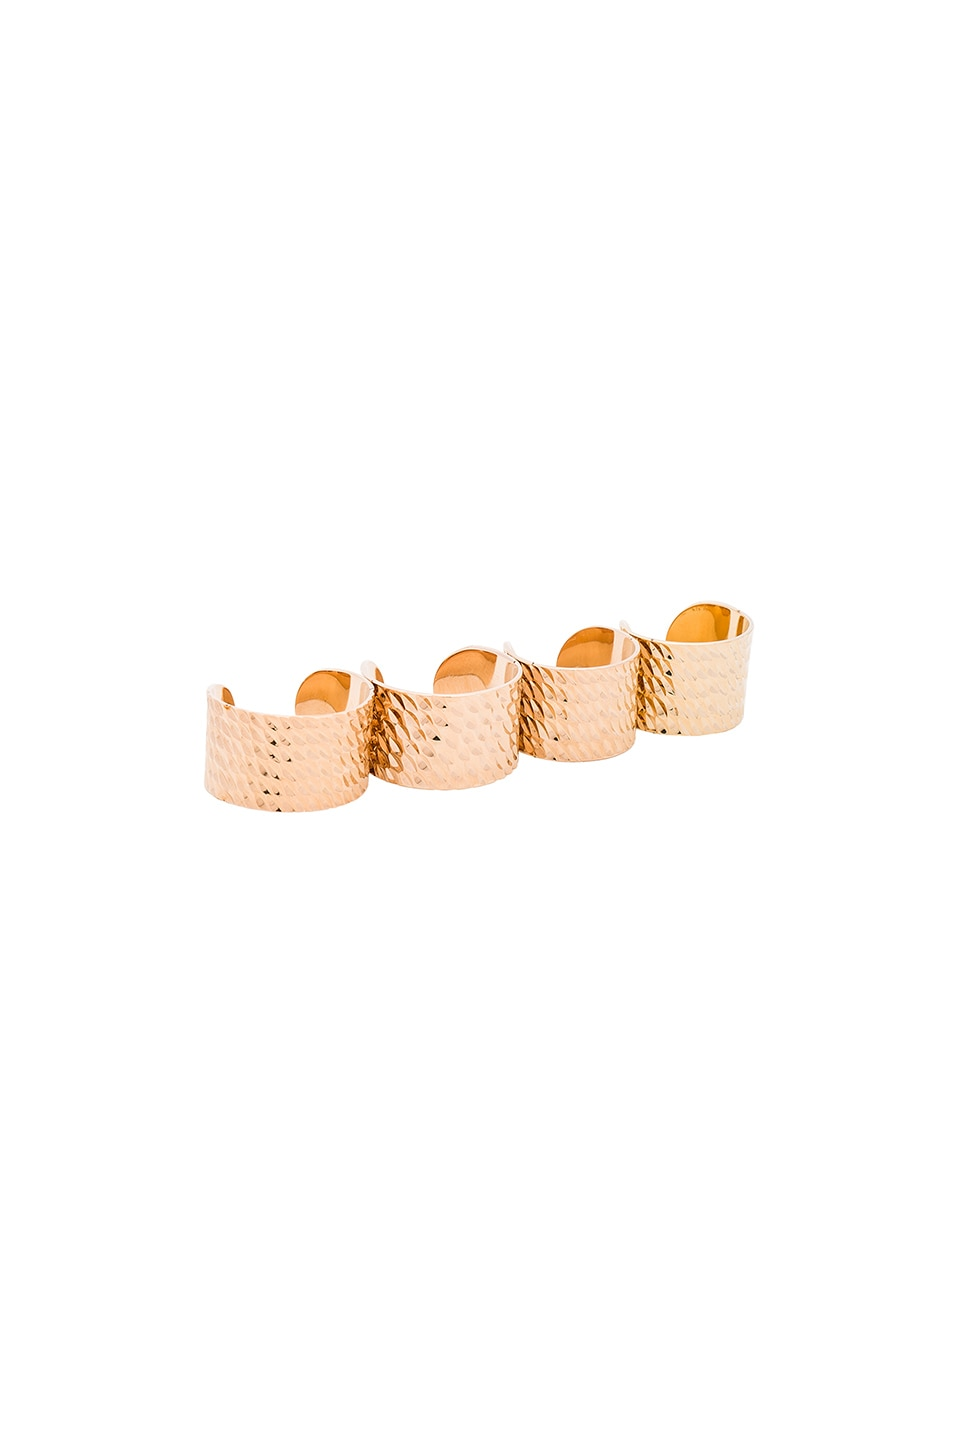 Image 1 of Maison Margiela Textured Ring Set in Gold